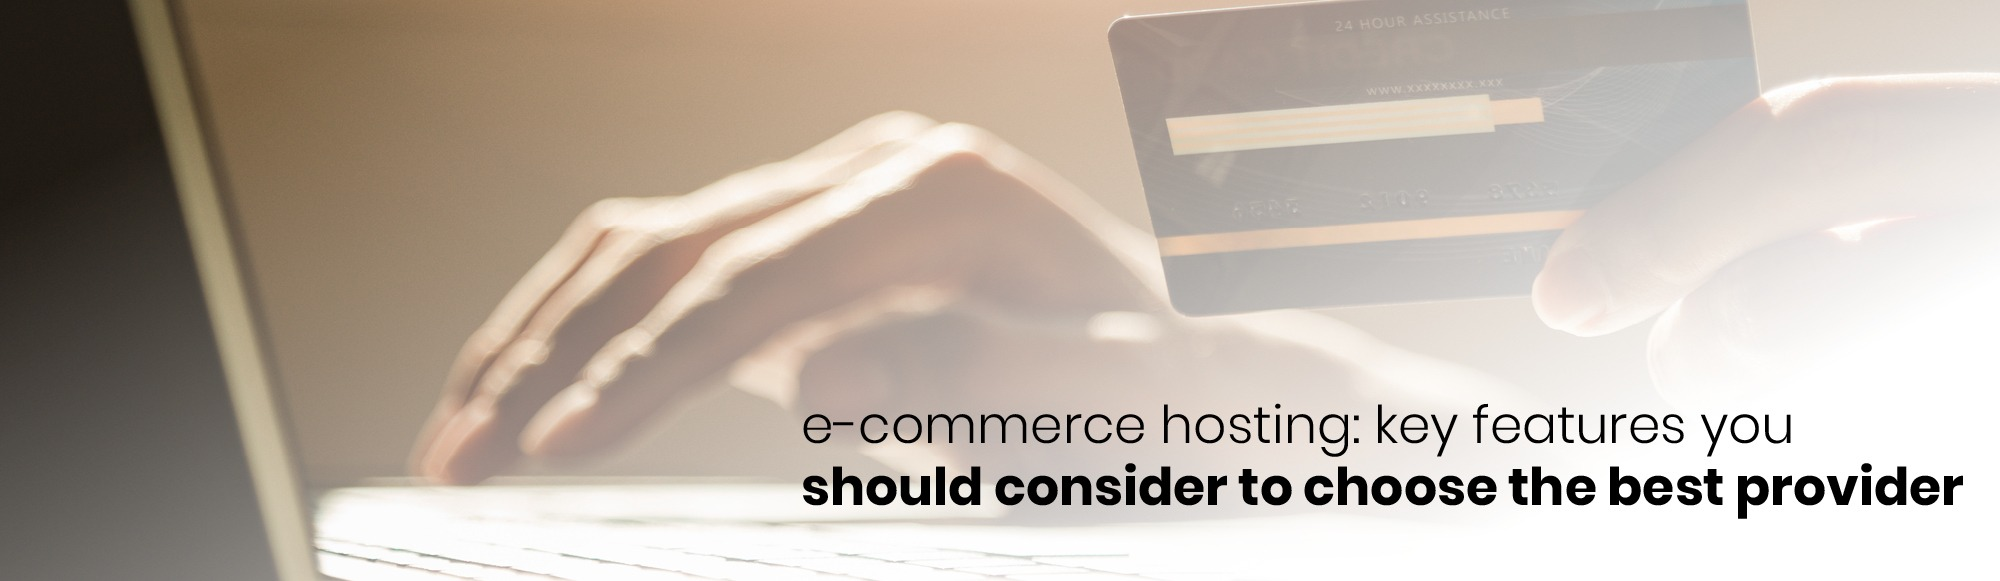 e-commerce-hosting-key-features-you-should-consider-to-choose-the-best-provider